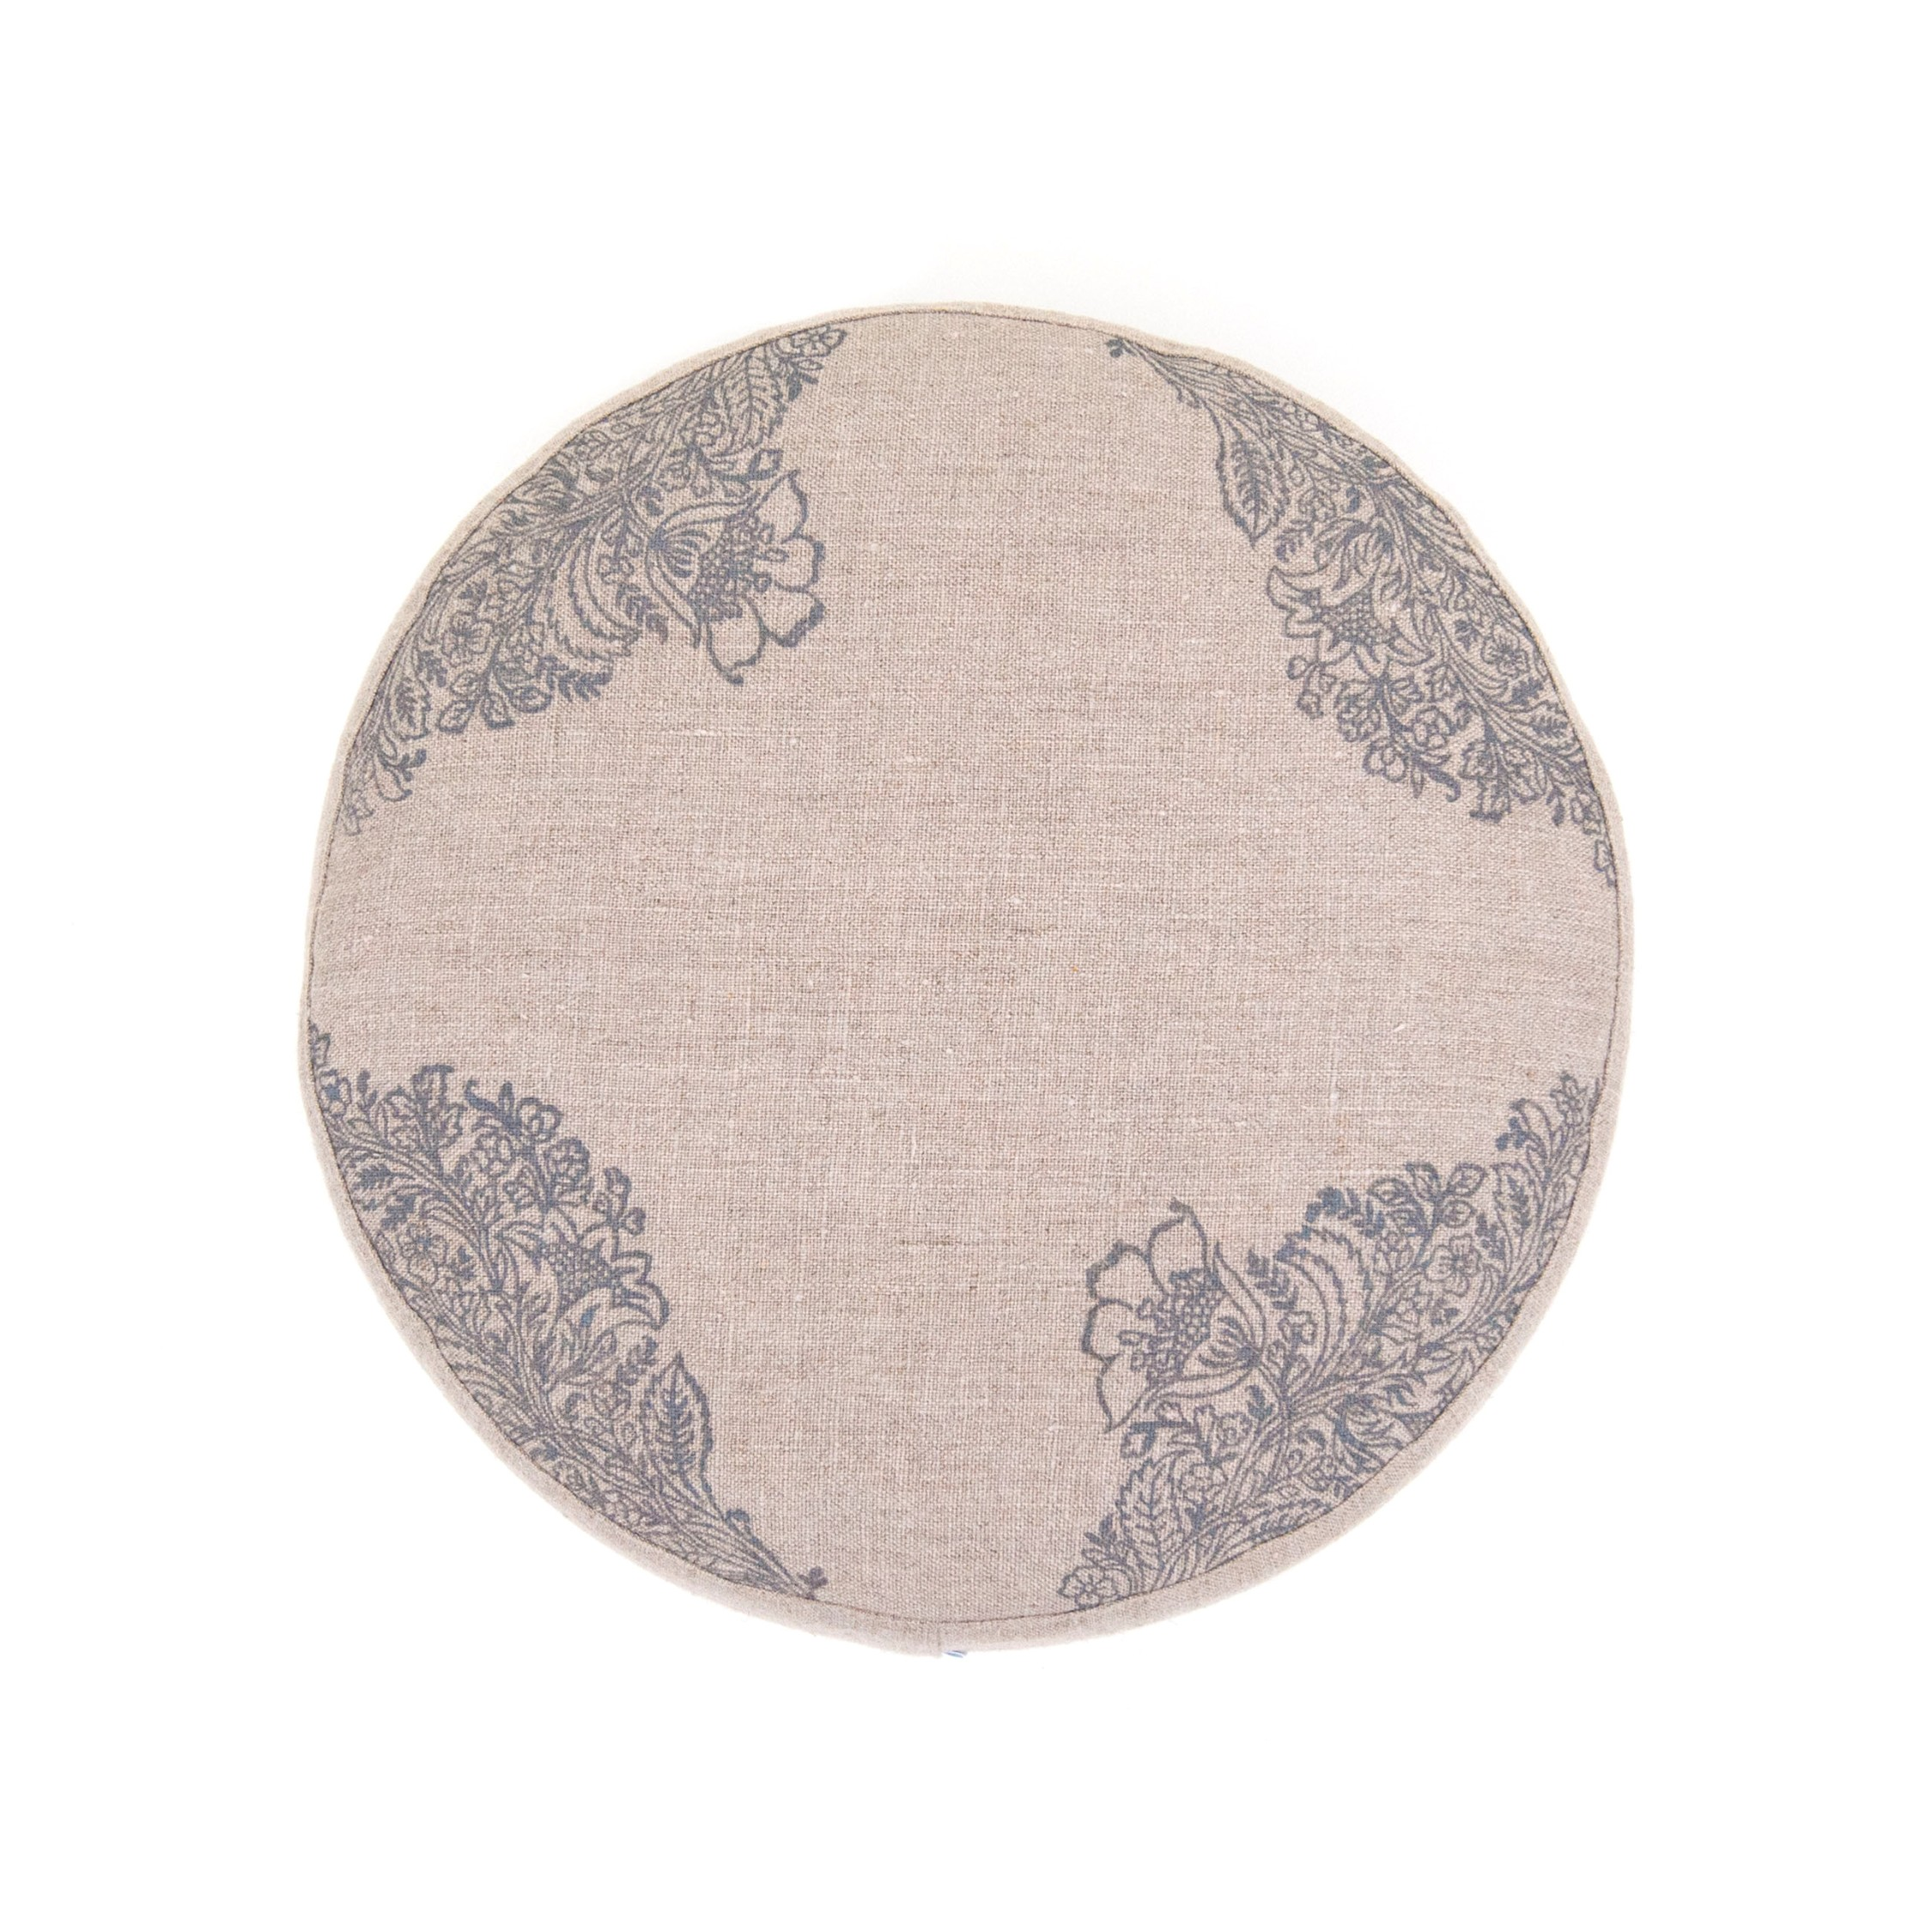 Top view of the natural meditation cushion by Pure Prana Label